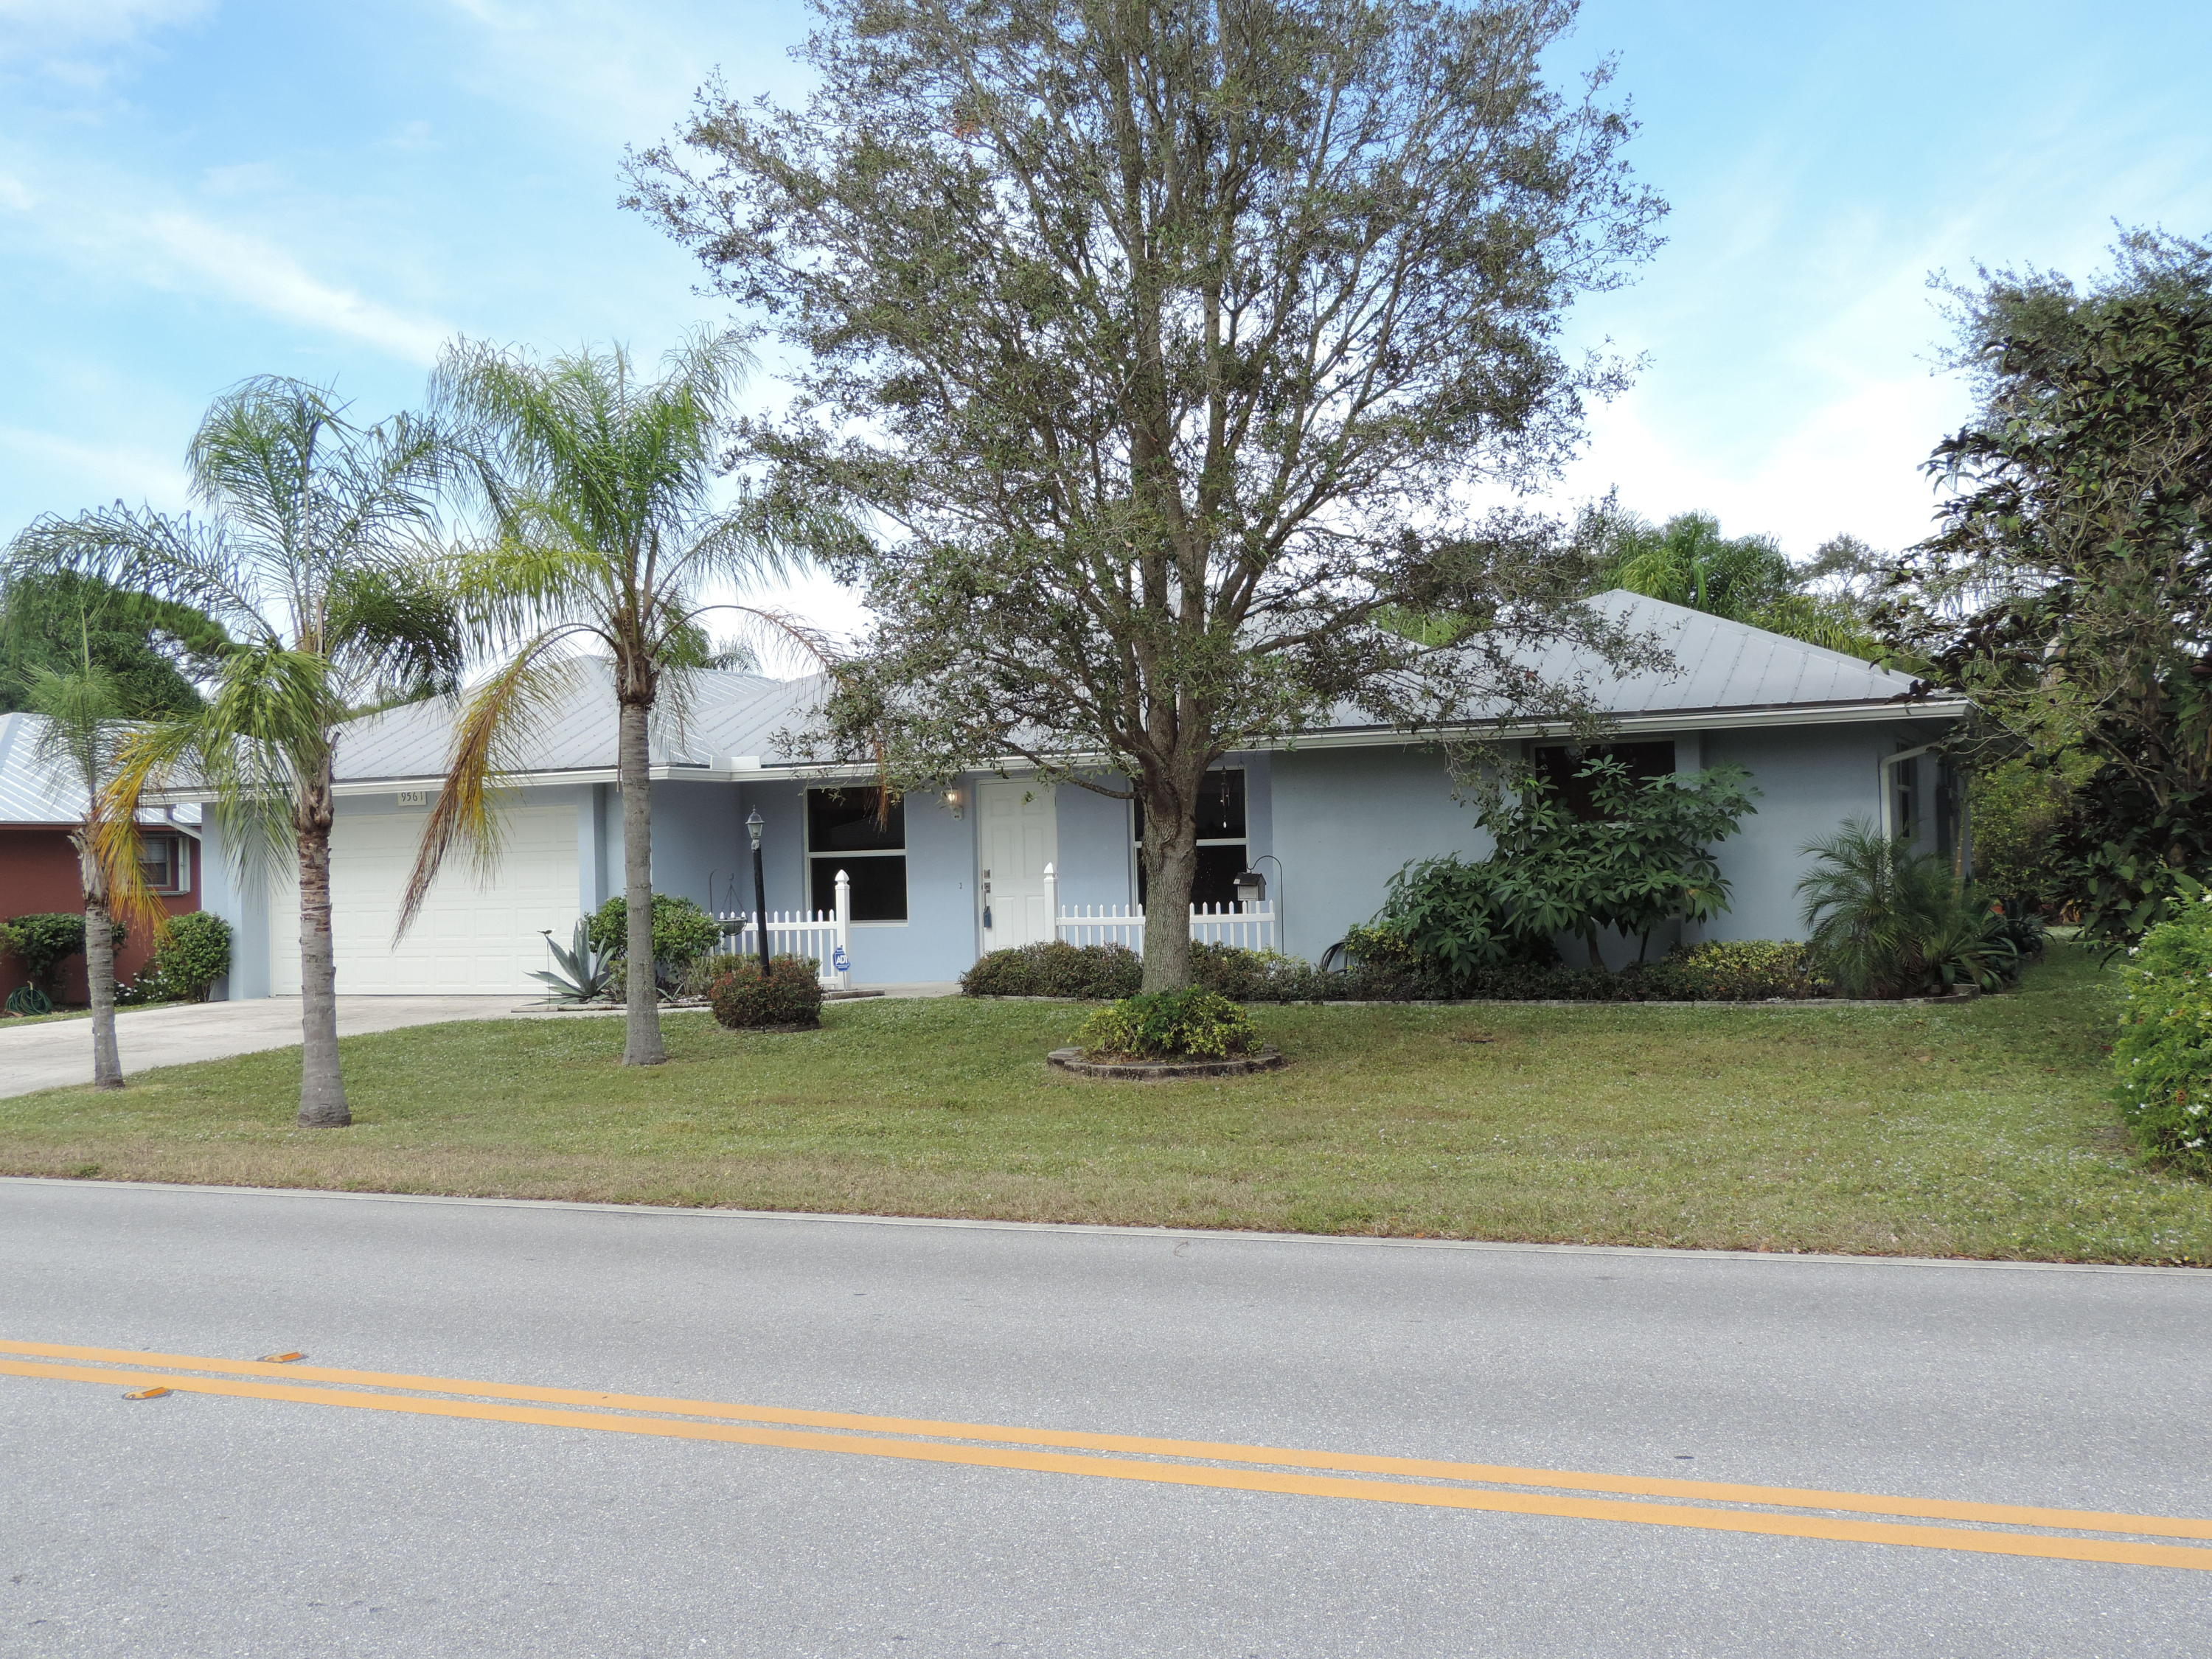 Home for sale in Iroquois Park Tequesta Florida